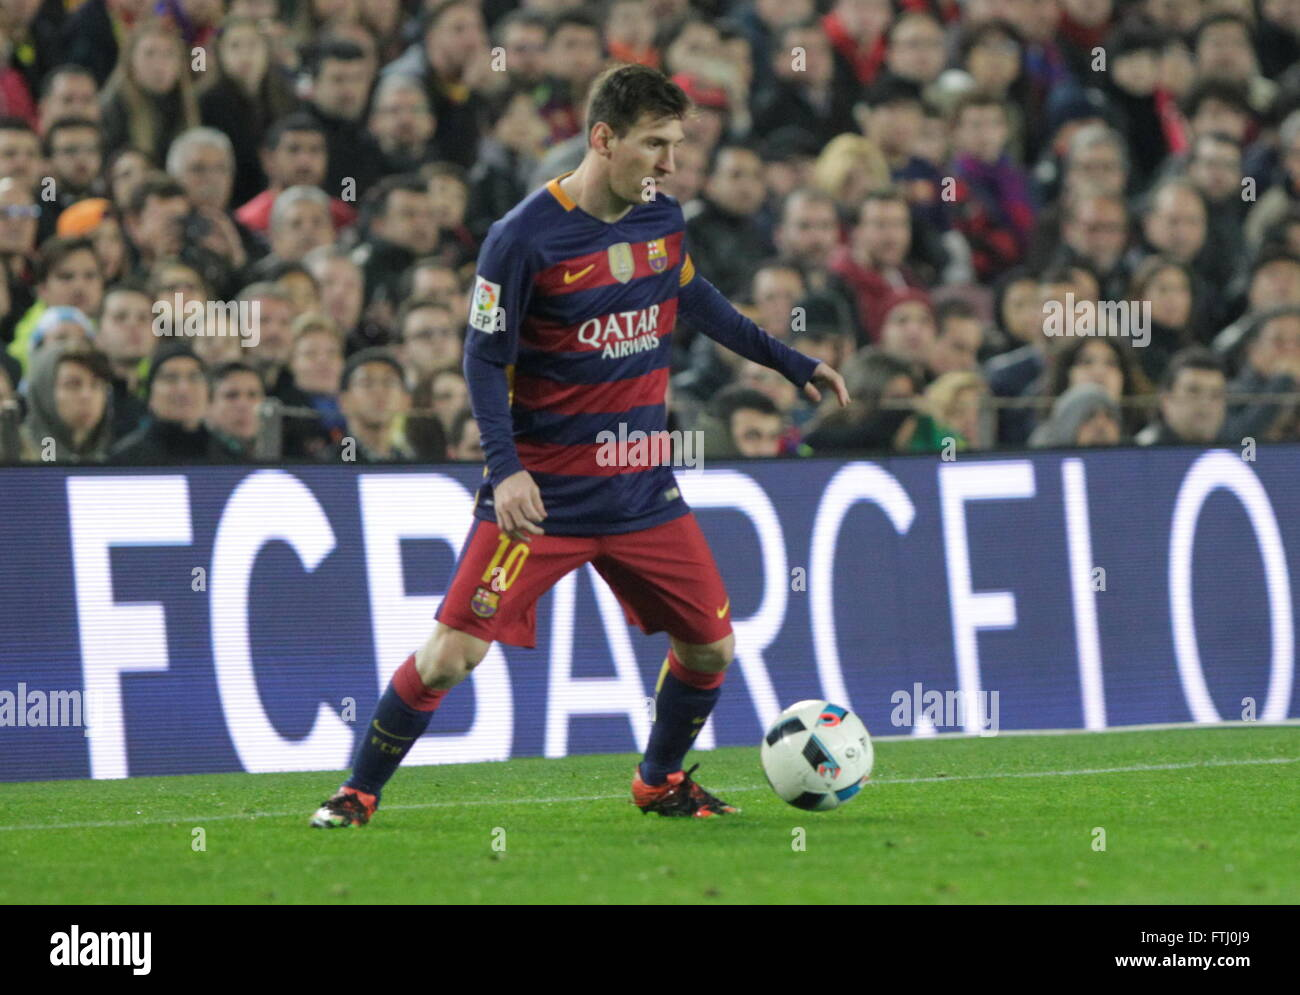 Barcelona, Spain, January 27, 2016: King Cup Lionel Messi actio during the match between FC Barcelona - Atlético - Stock Image